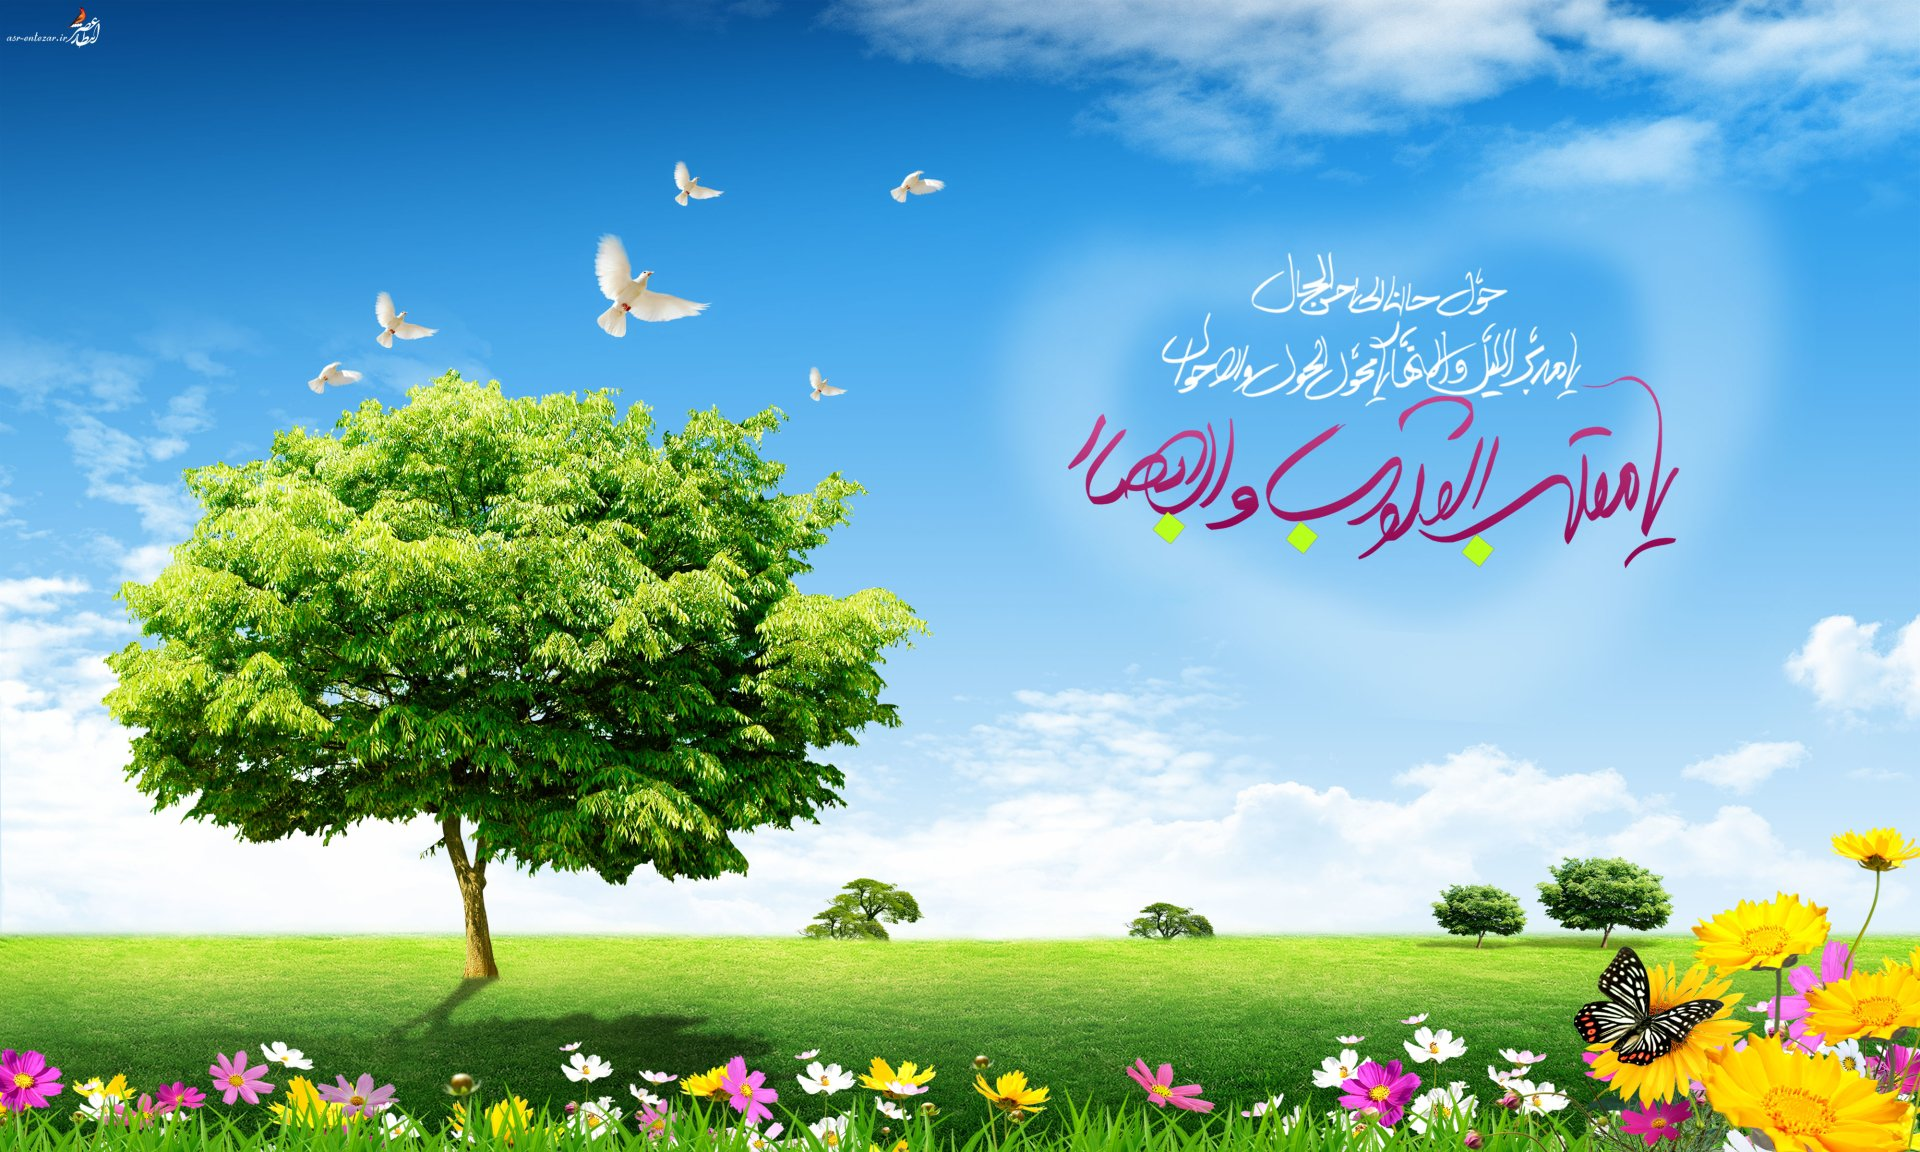 Wallpapers ID:994909